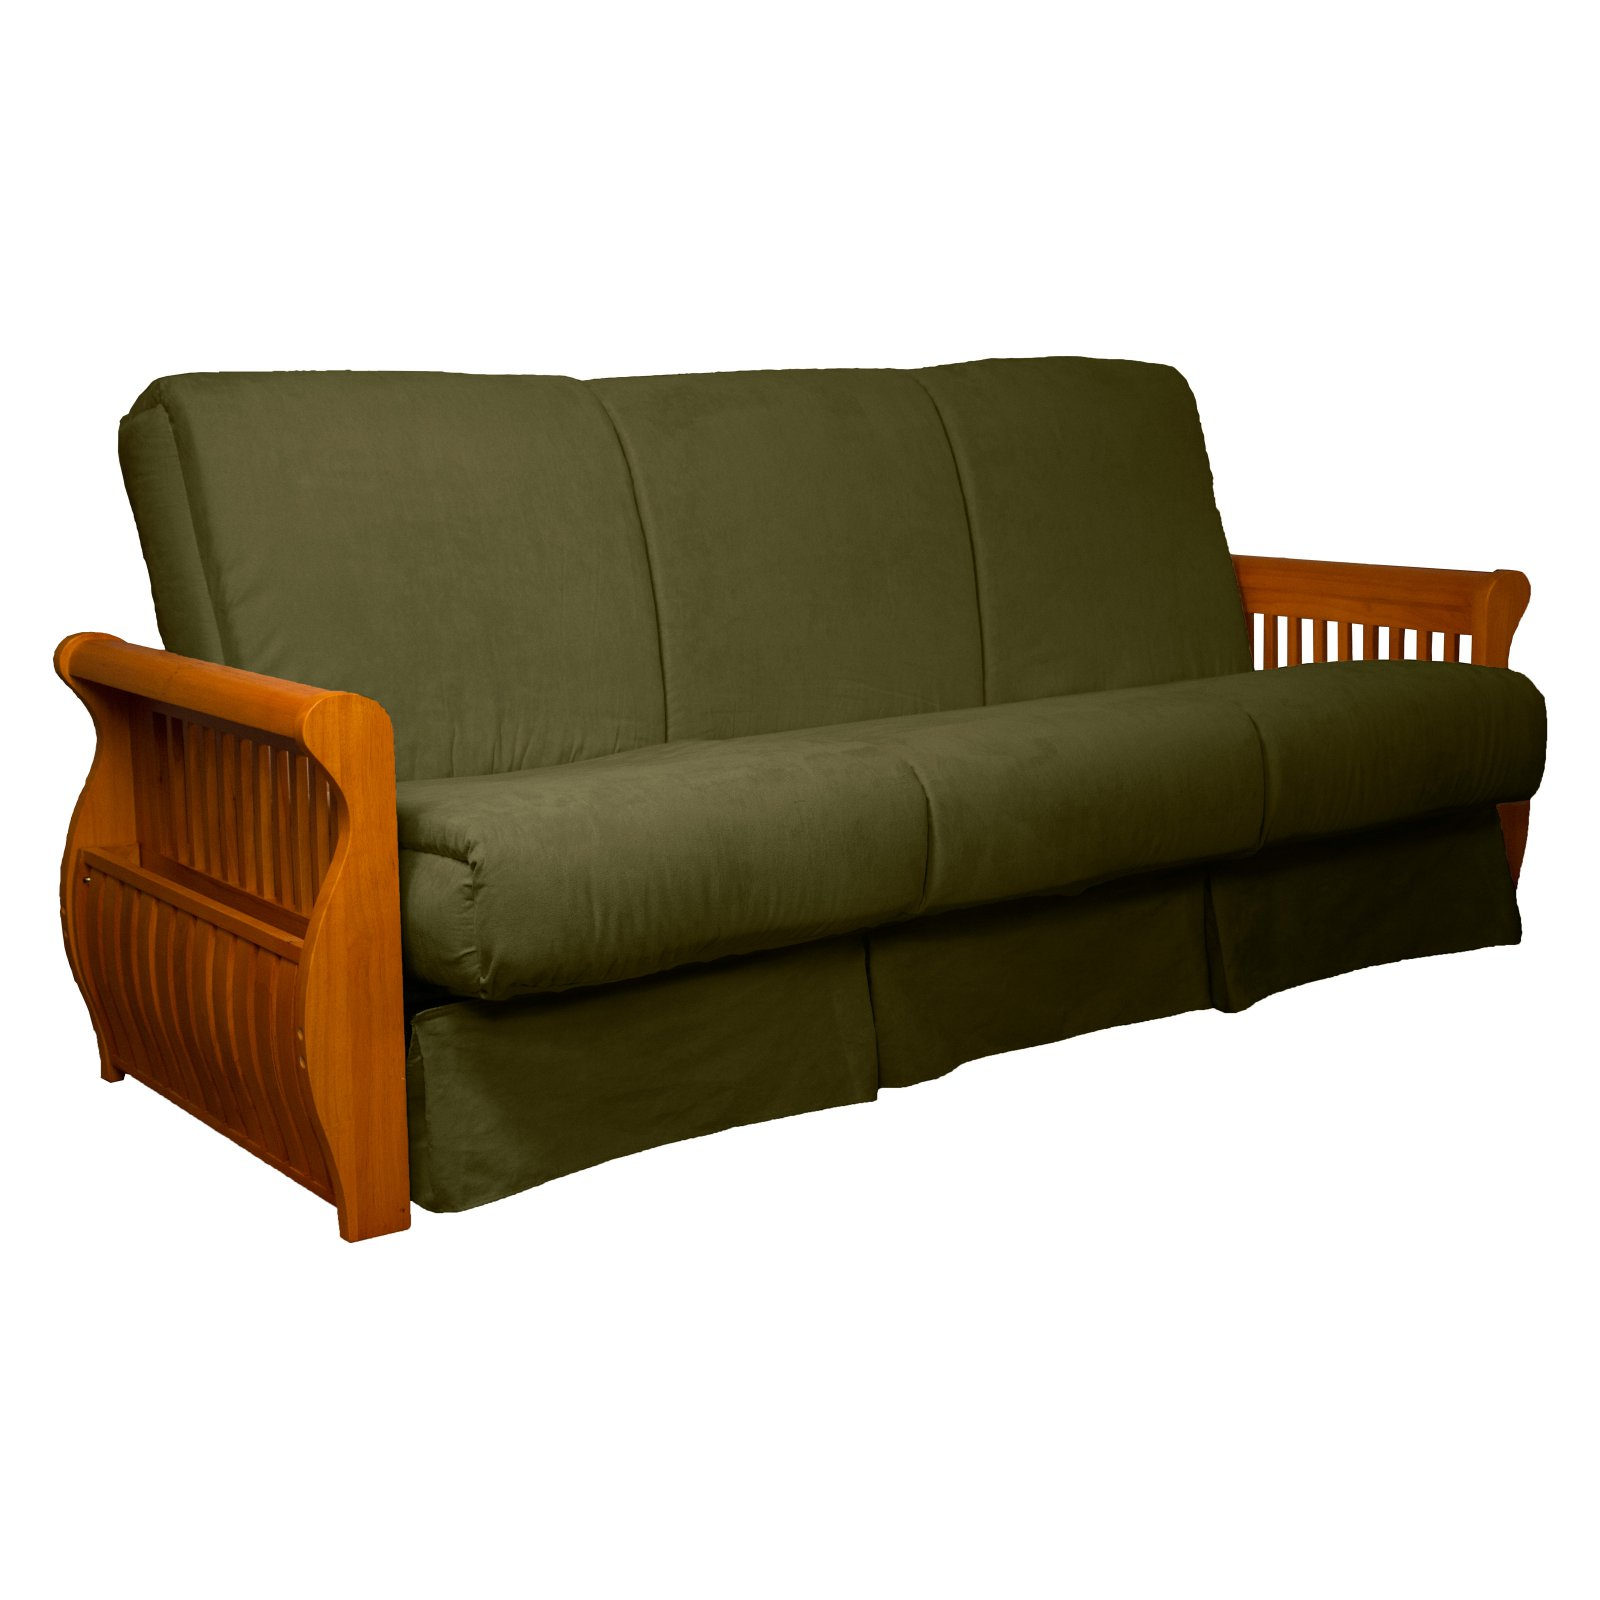 Epic Home Furnishings Sydney Perfect Sit & Sleep Pocketed Coil Innerspring with Pillow Top Futon